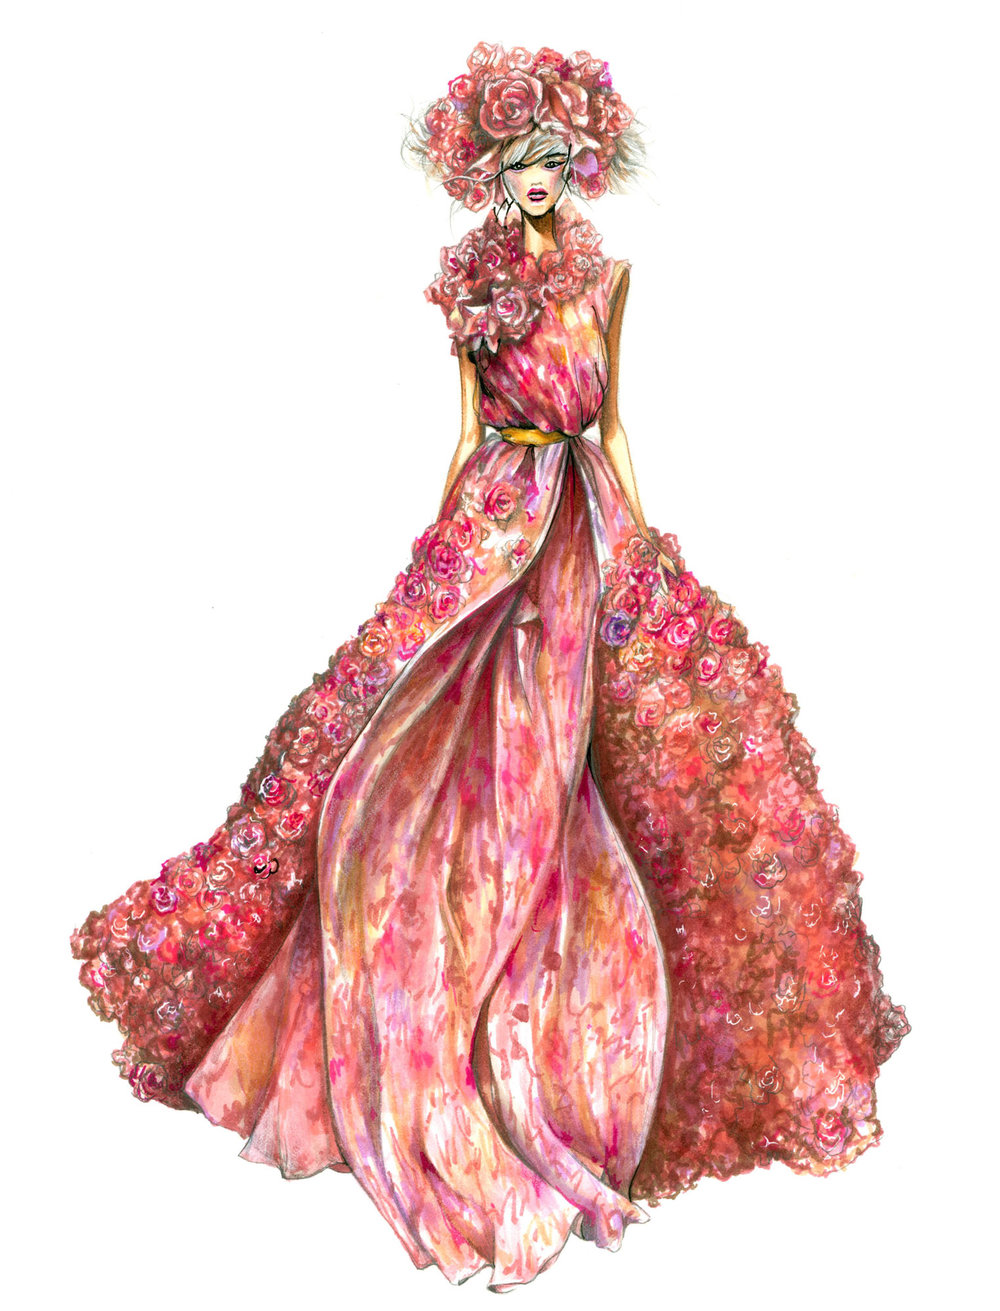 FASHION ILLUSTRATION GOWNS NANCY RIEGELMAN